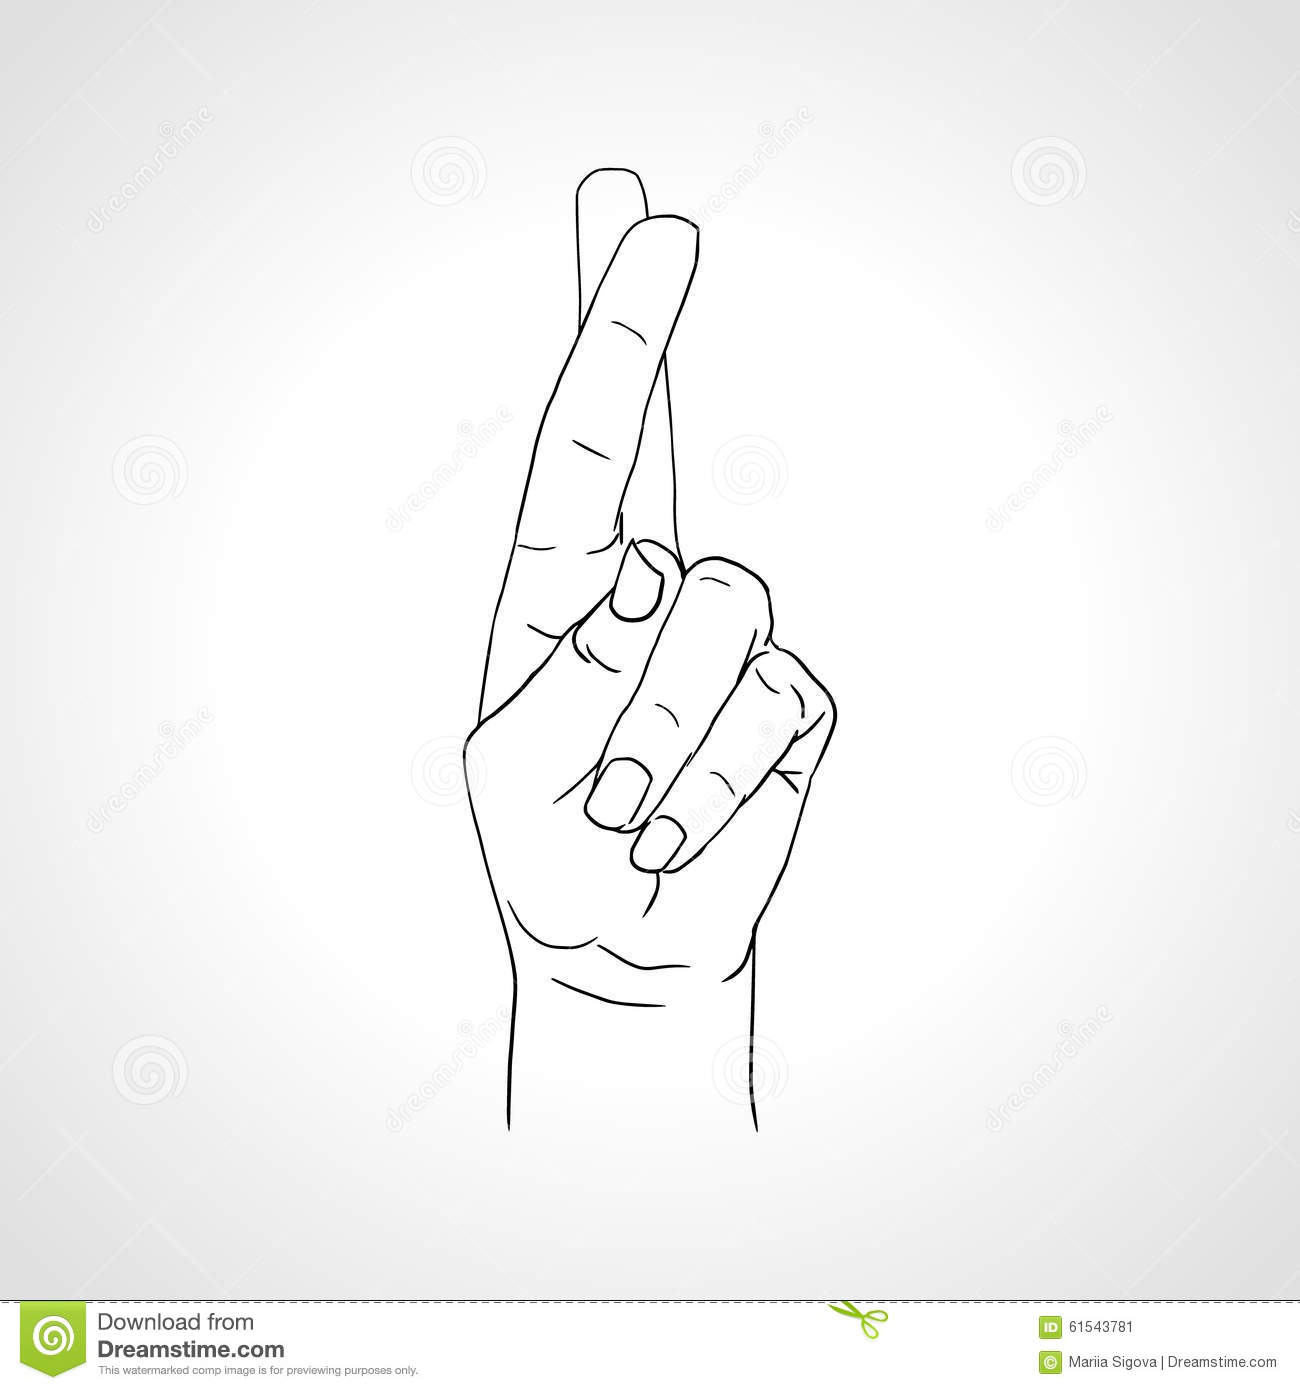 Free Clipart Fingers Crossed Keep Your Fingers Crossed, HD Png Download -  kindpng